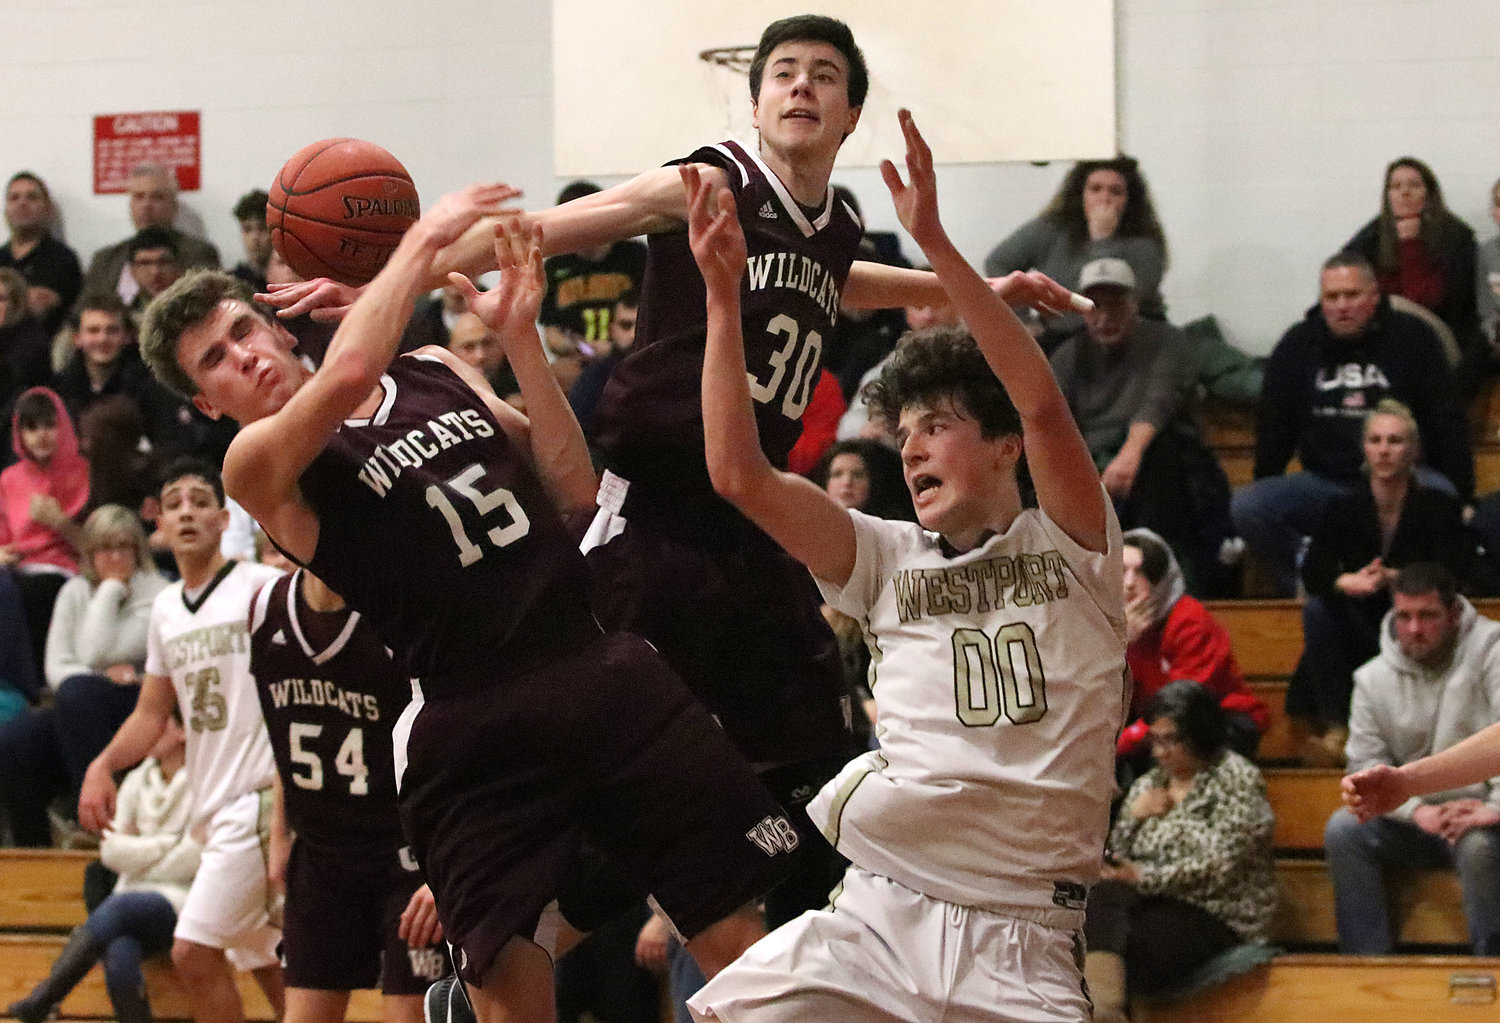 Junior forward Max Powers looks on as West Bridgewater teammates vie for a defensive rebound in the first half.